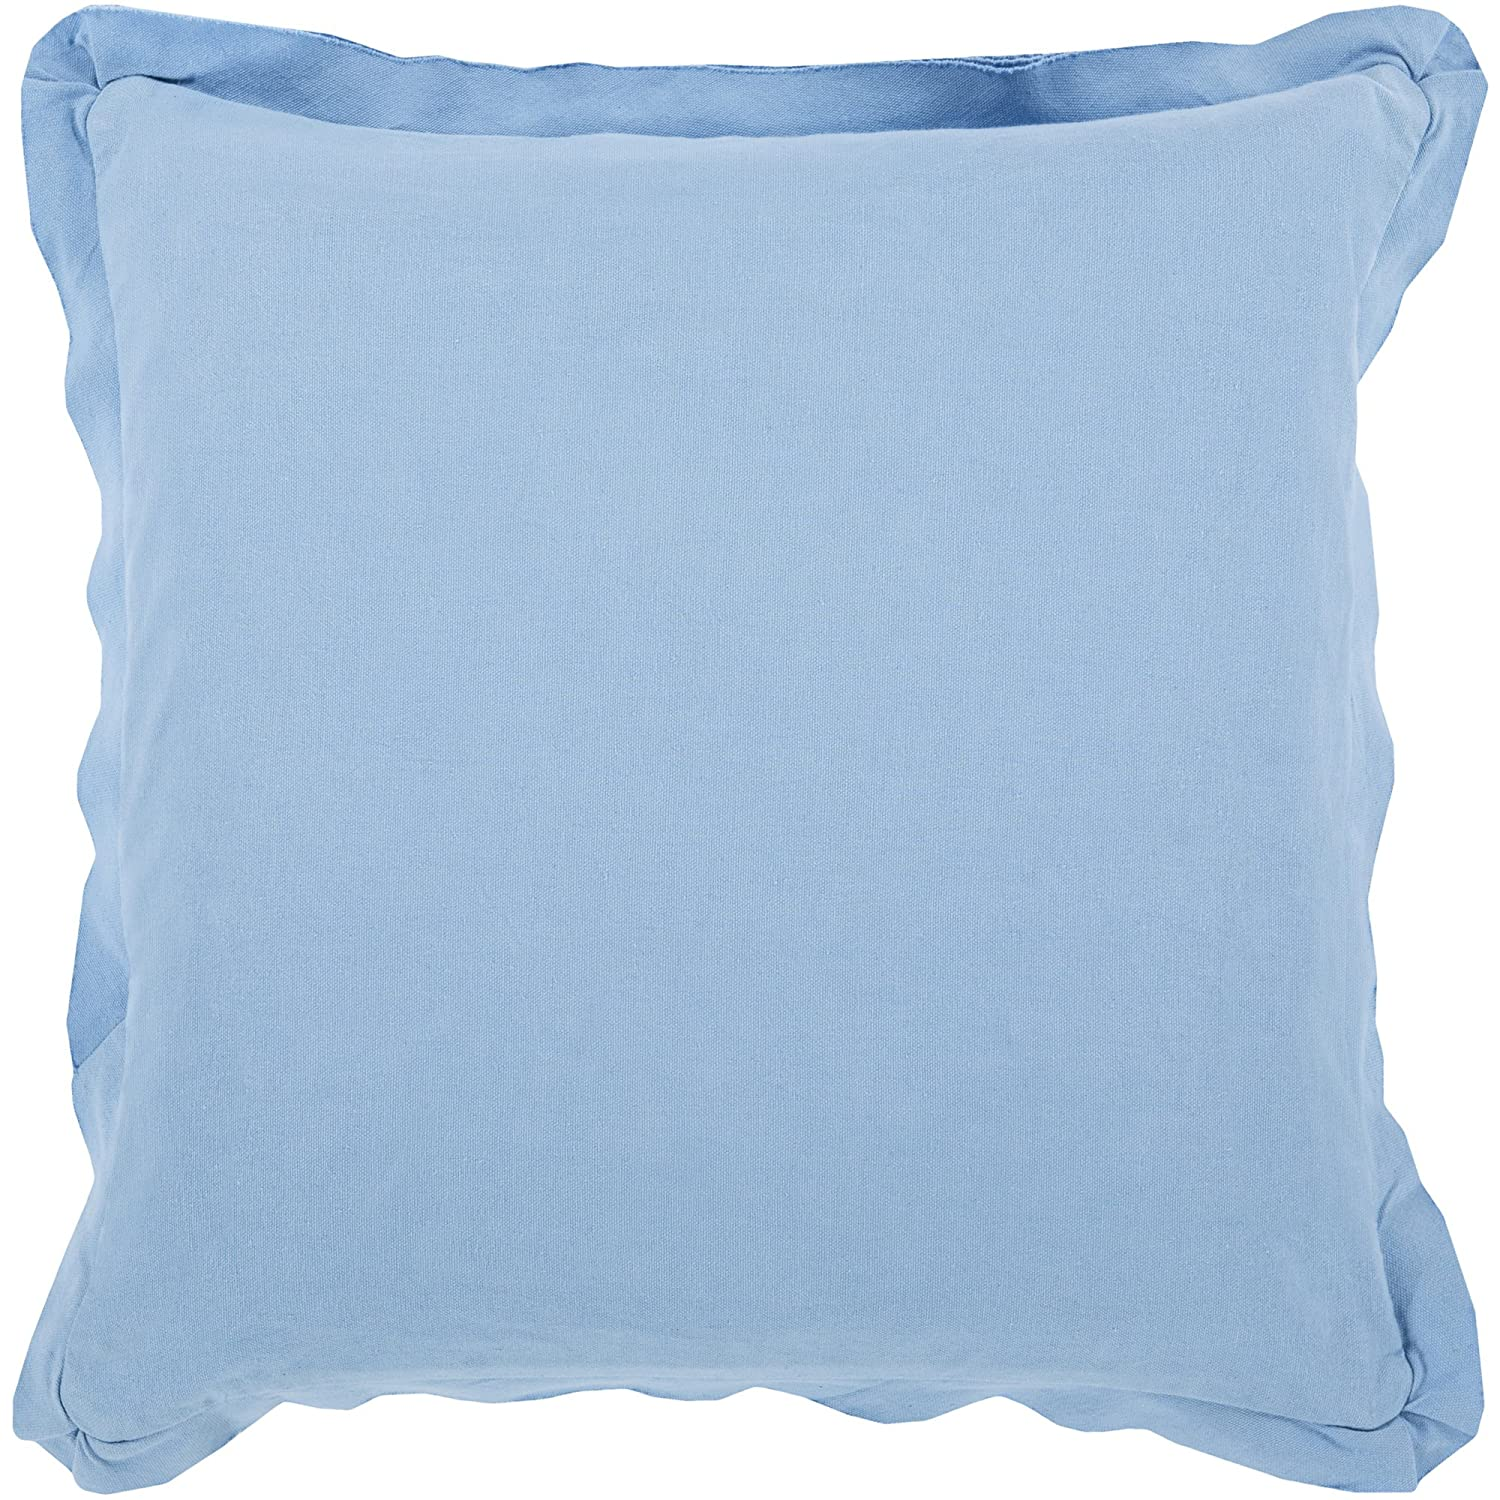 Surya Rug TF002-2222P Square Slate Blue Decorative Poly Fiber Pillow 22 x 22 in.   B00H2KCSPQ